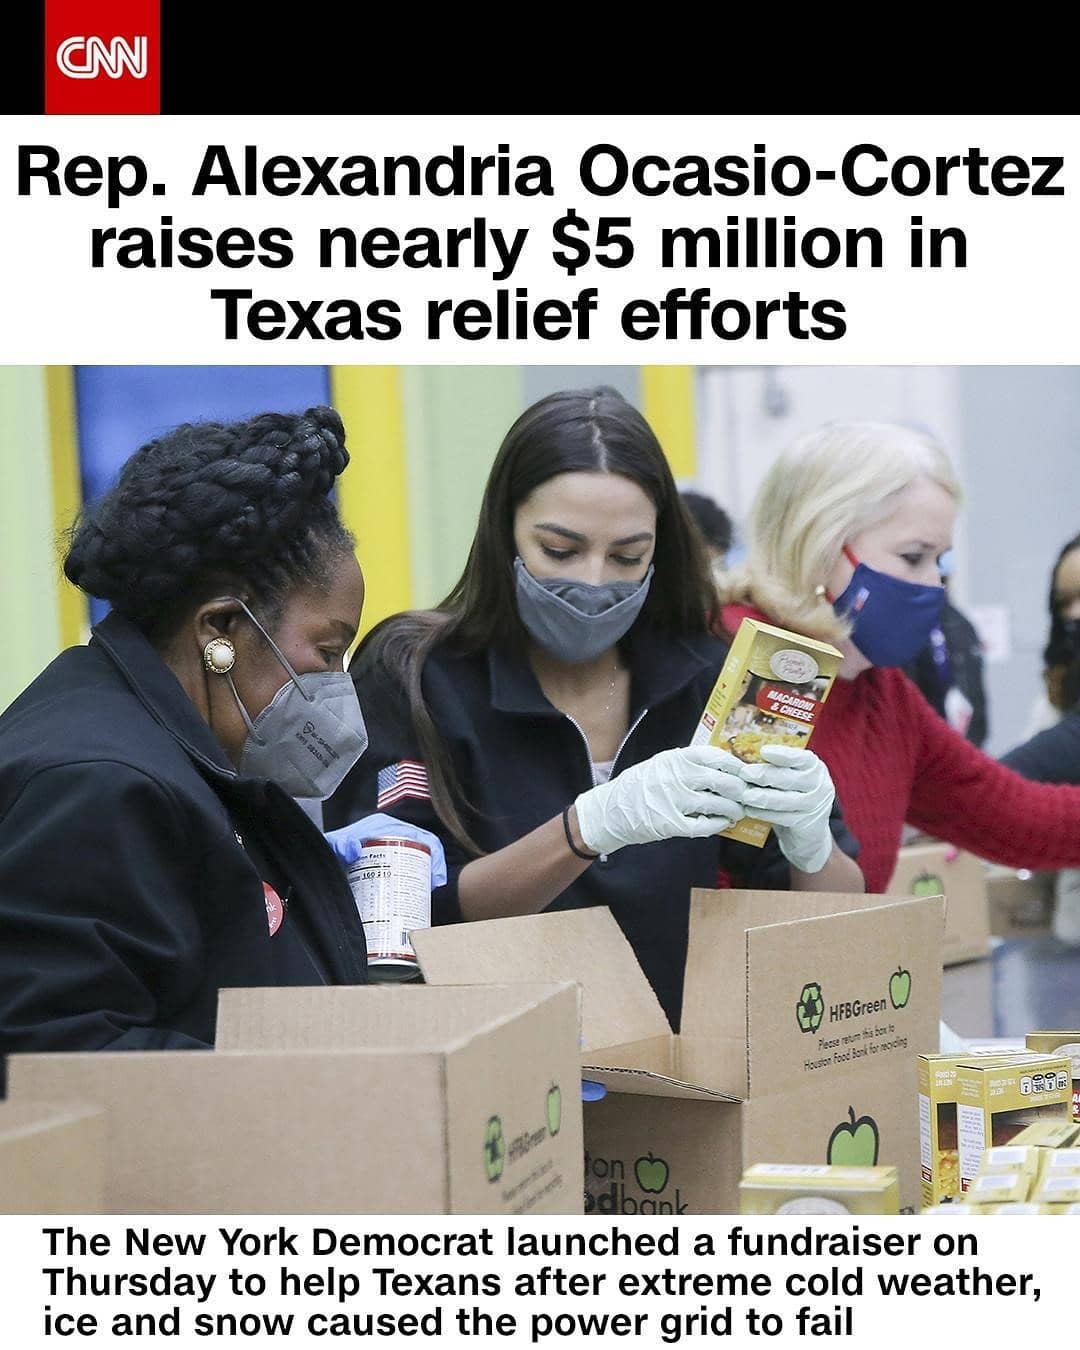 Democratic Rep. Alexandria Ocasio-Cortez had amassed $4.7 million in her fundraising efforts to help Texans hard hit by last week's winter storm as of Sunday evening, her press secretary Ivet Contreras confirmed to CNN. The New York Democrat launched her fundraiser Thursday after extreme cold weather, ice and snow caused the power grid managed by the Electric Reliability Council of Texas to fail, leading to rolling blackouts and a boil-water advisory for nearly half of Texas. The congresswoman's efforts come as Texas Sen. Ted Cruz, a political adversary, faces backlash — including from members of his own party — for flying to Cancun, Mexico, last week as many of his constituents were left without power or water. Tap the link in our bio to learn more.  (📸: Elizabeth Conley/Houston Chronicle/AP)